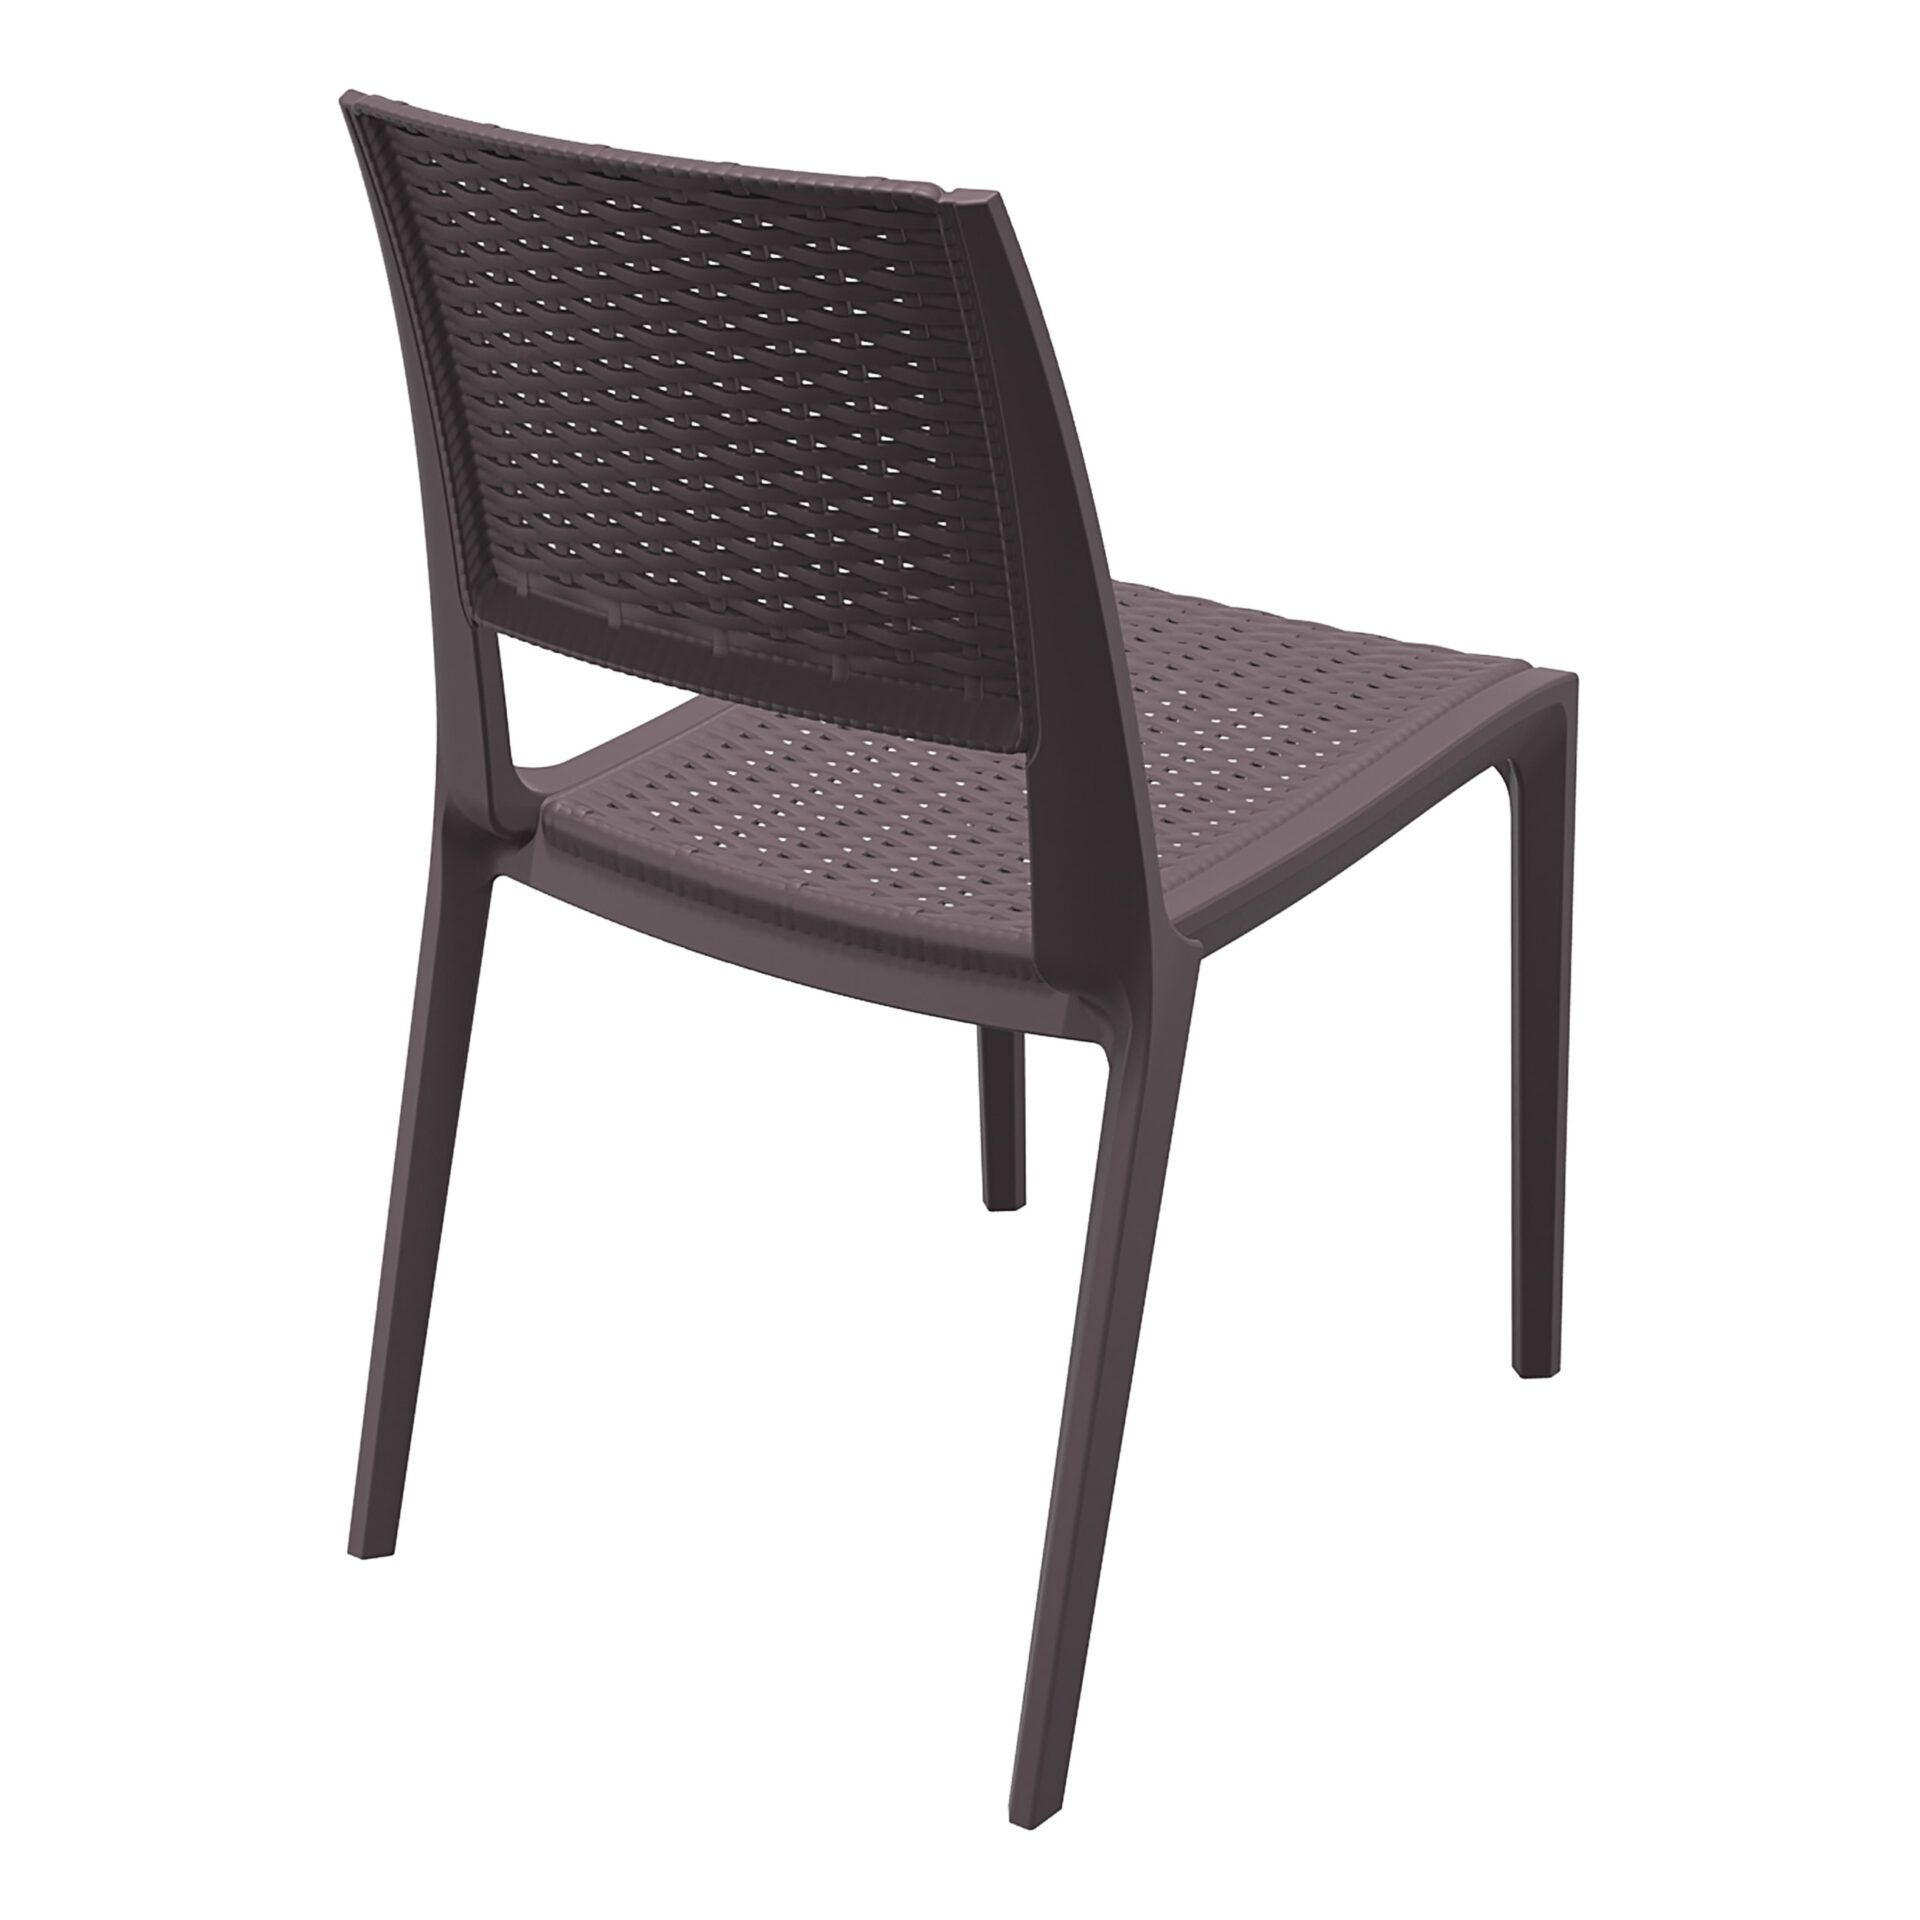 resin rattan outdoor cafe verona chair brown back side